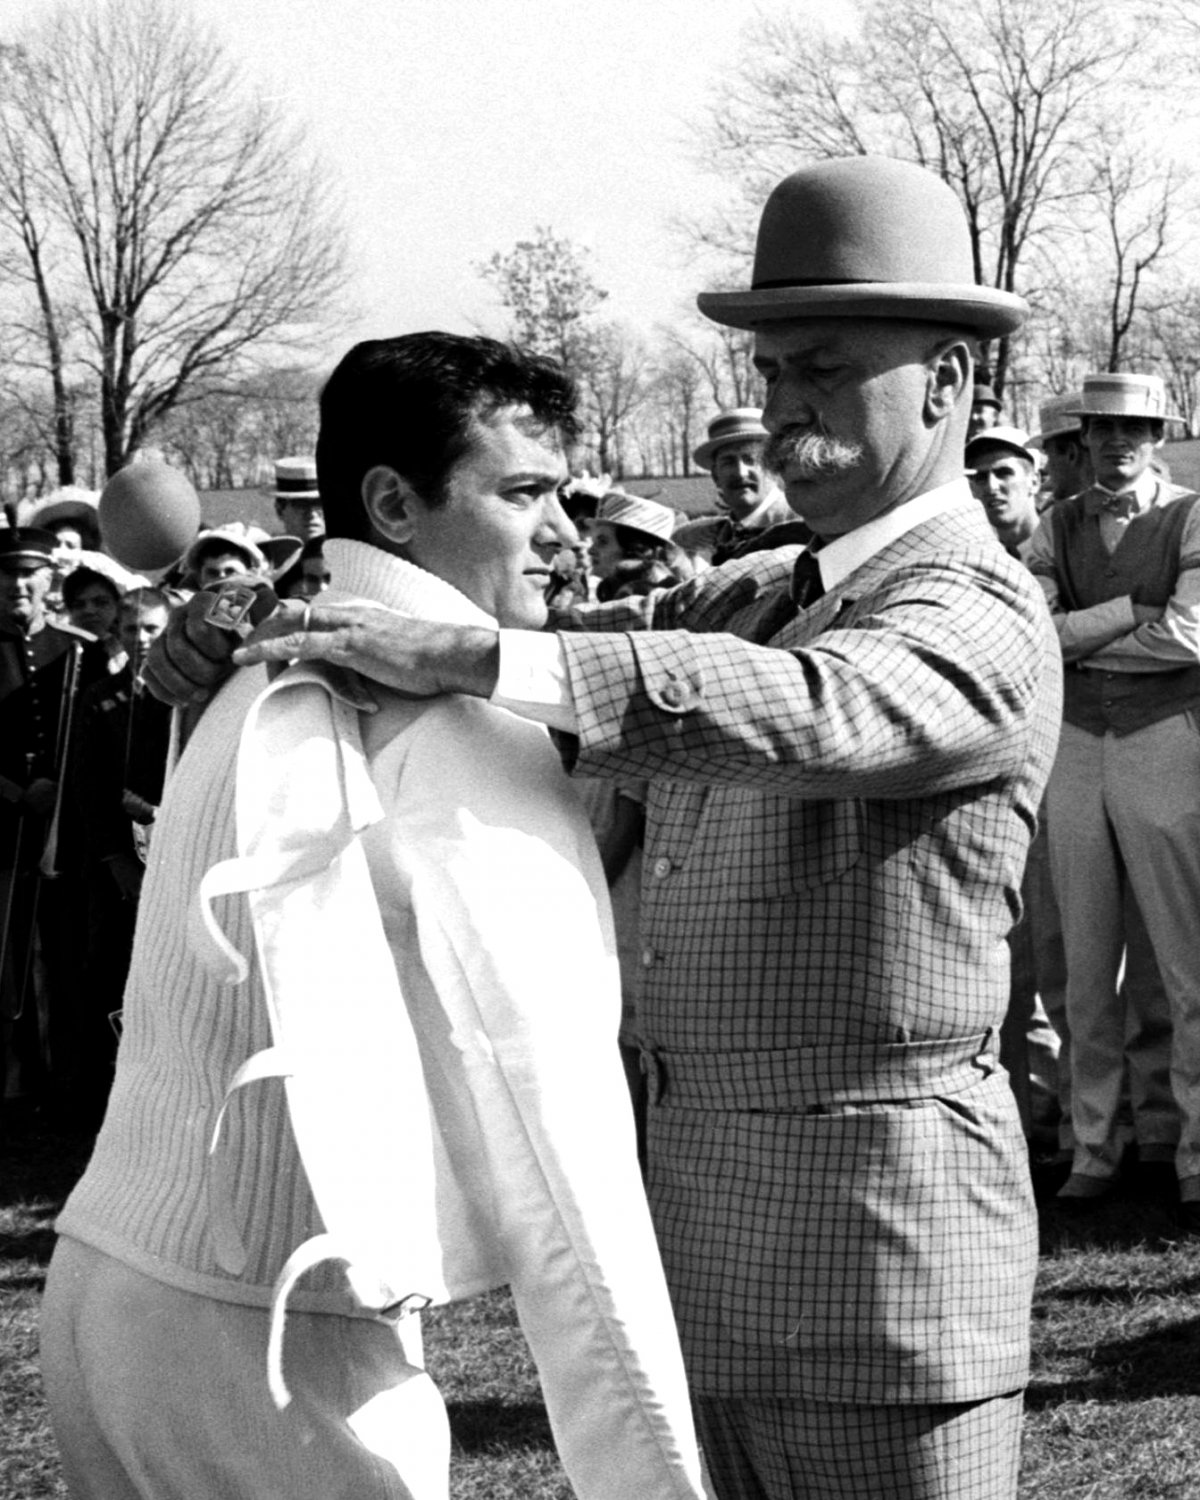 TONY CURTIS AND KEENAN WYNN IN 'THE GREAT RACE' - 8X10 PUBLICITY PHOTO (EE-055)